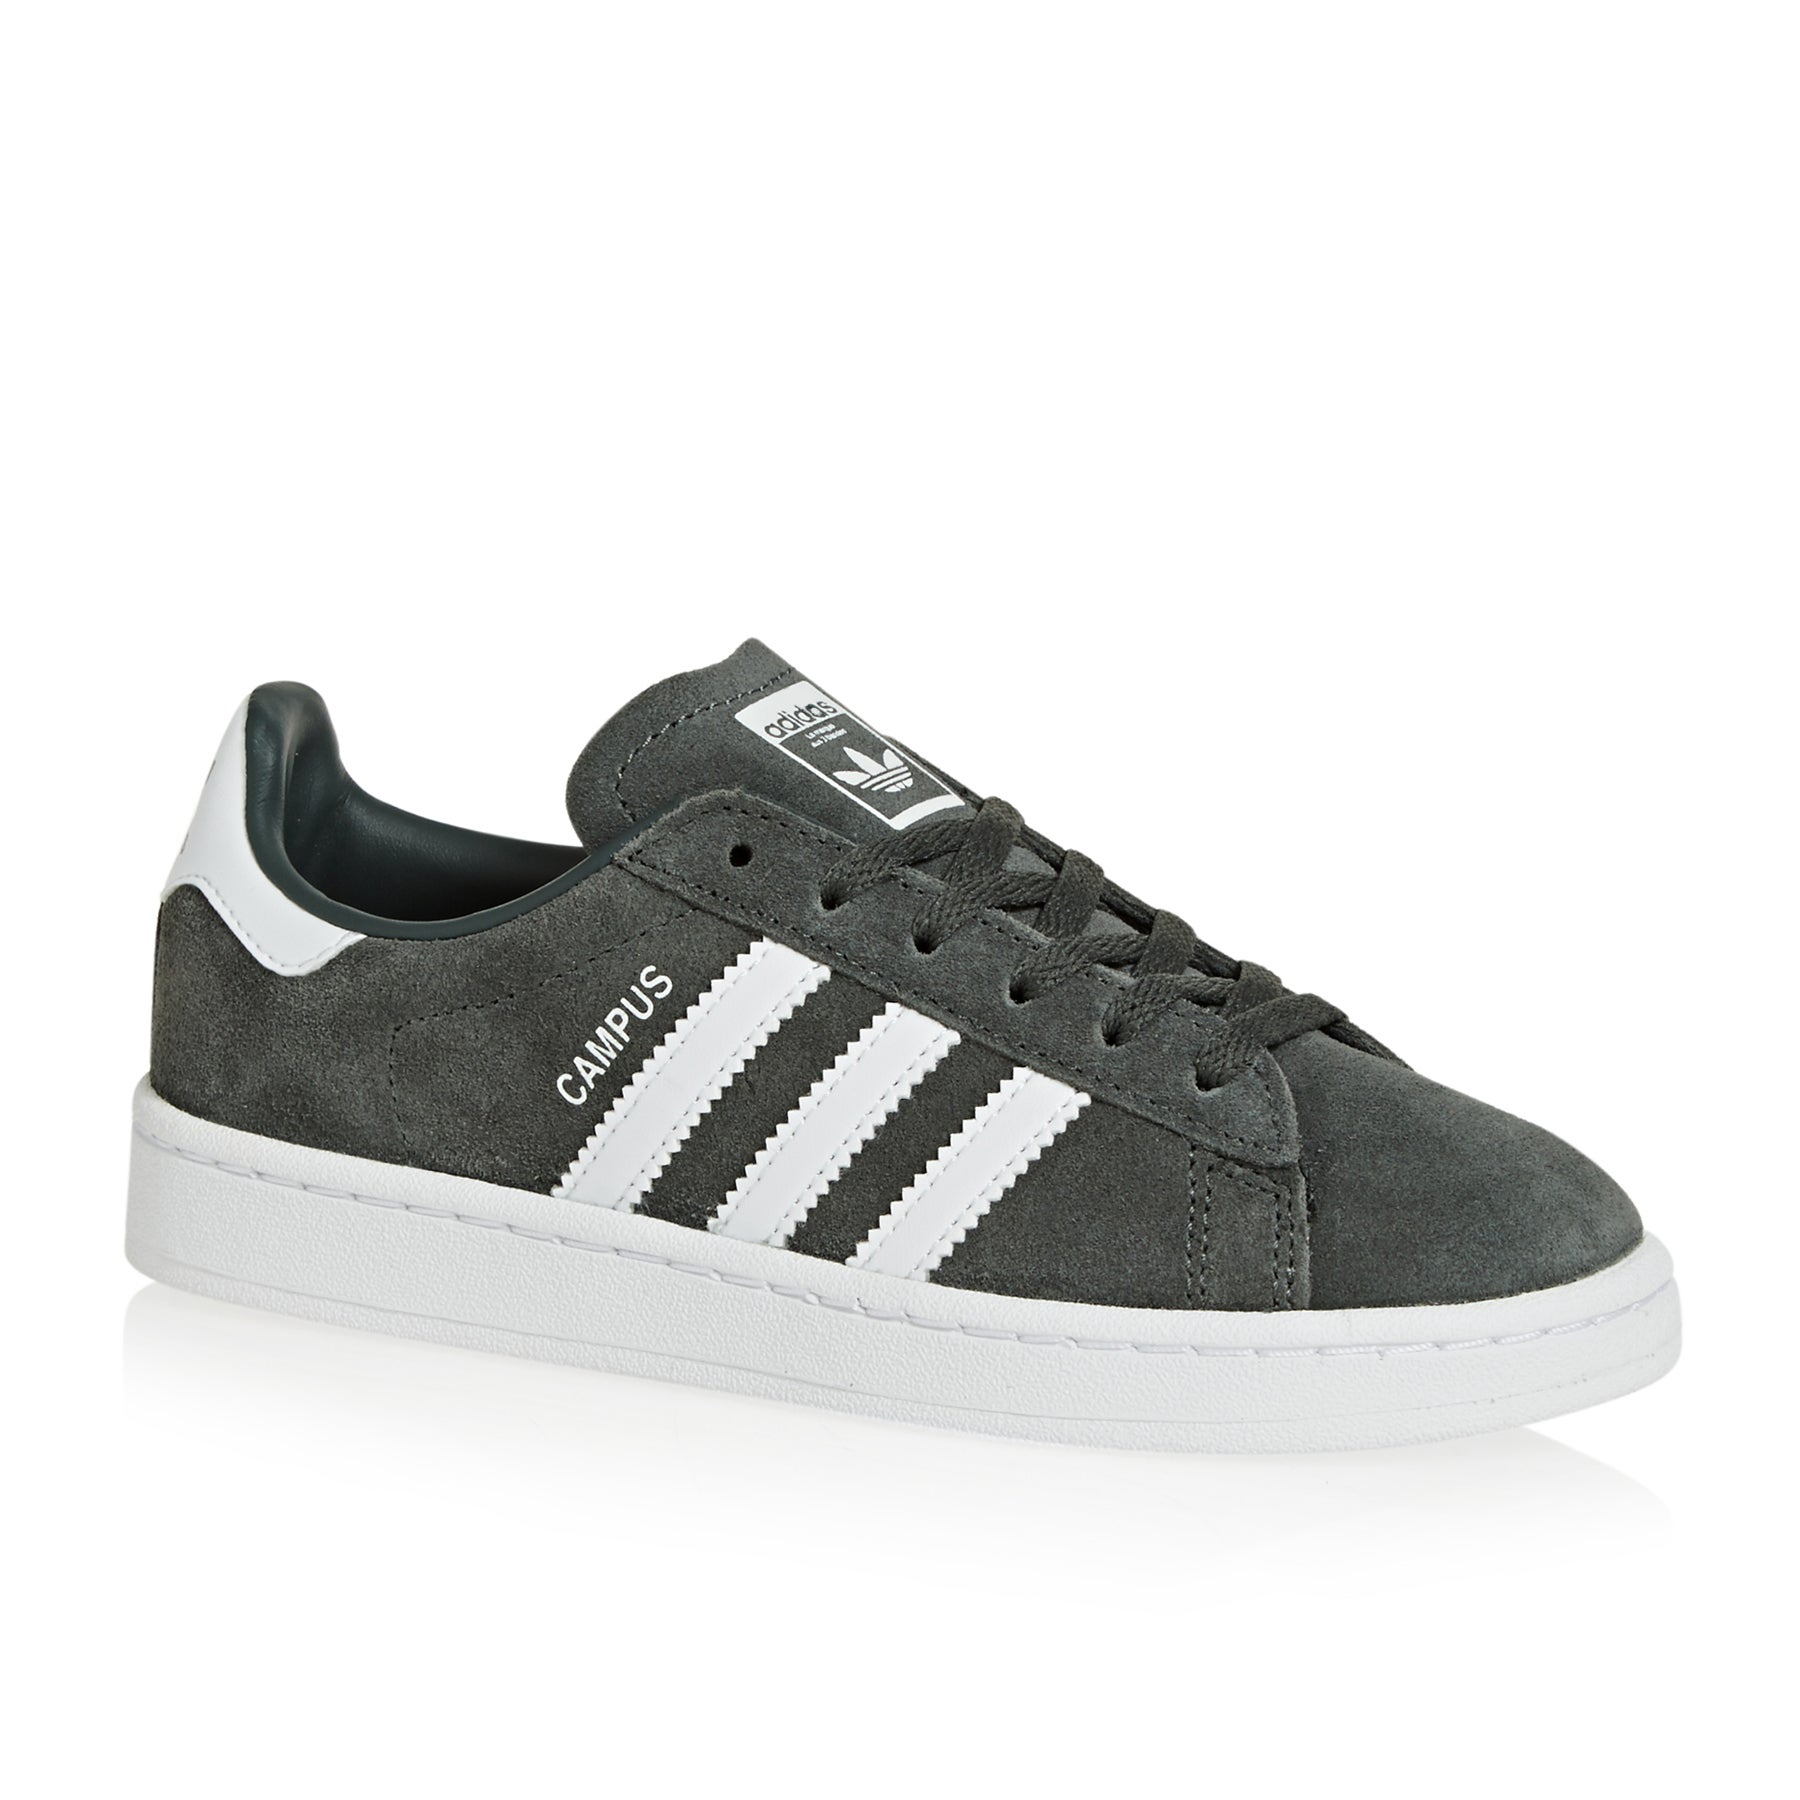 Adidas Originals Campus Junior Kids Shoes - Legend Ivy Footwear White